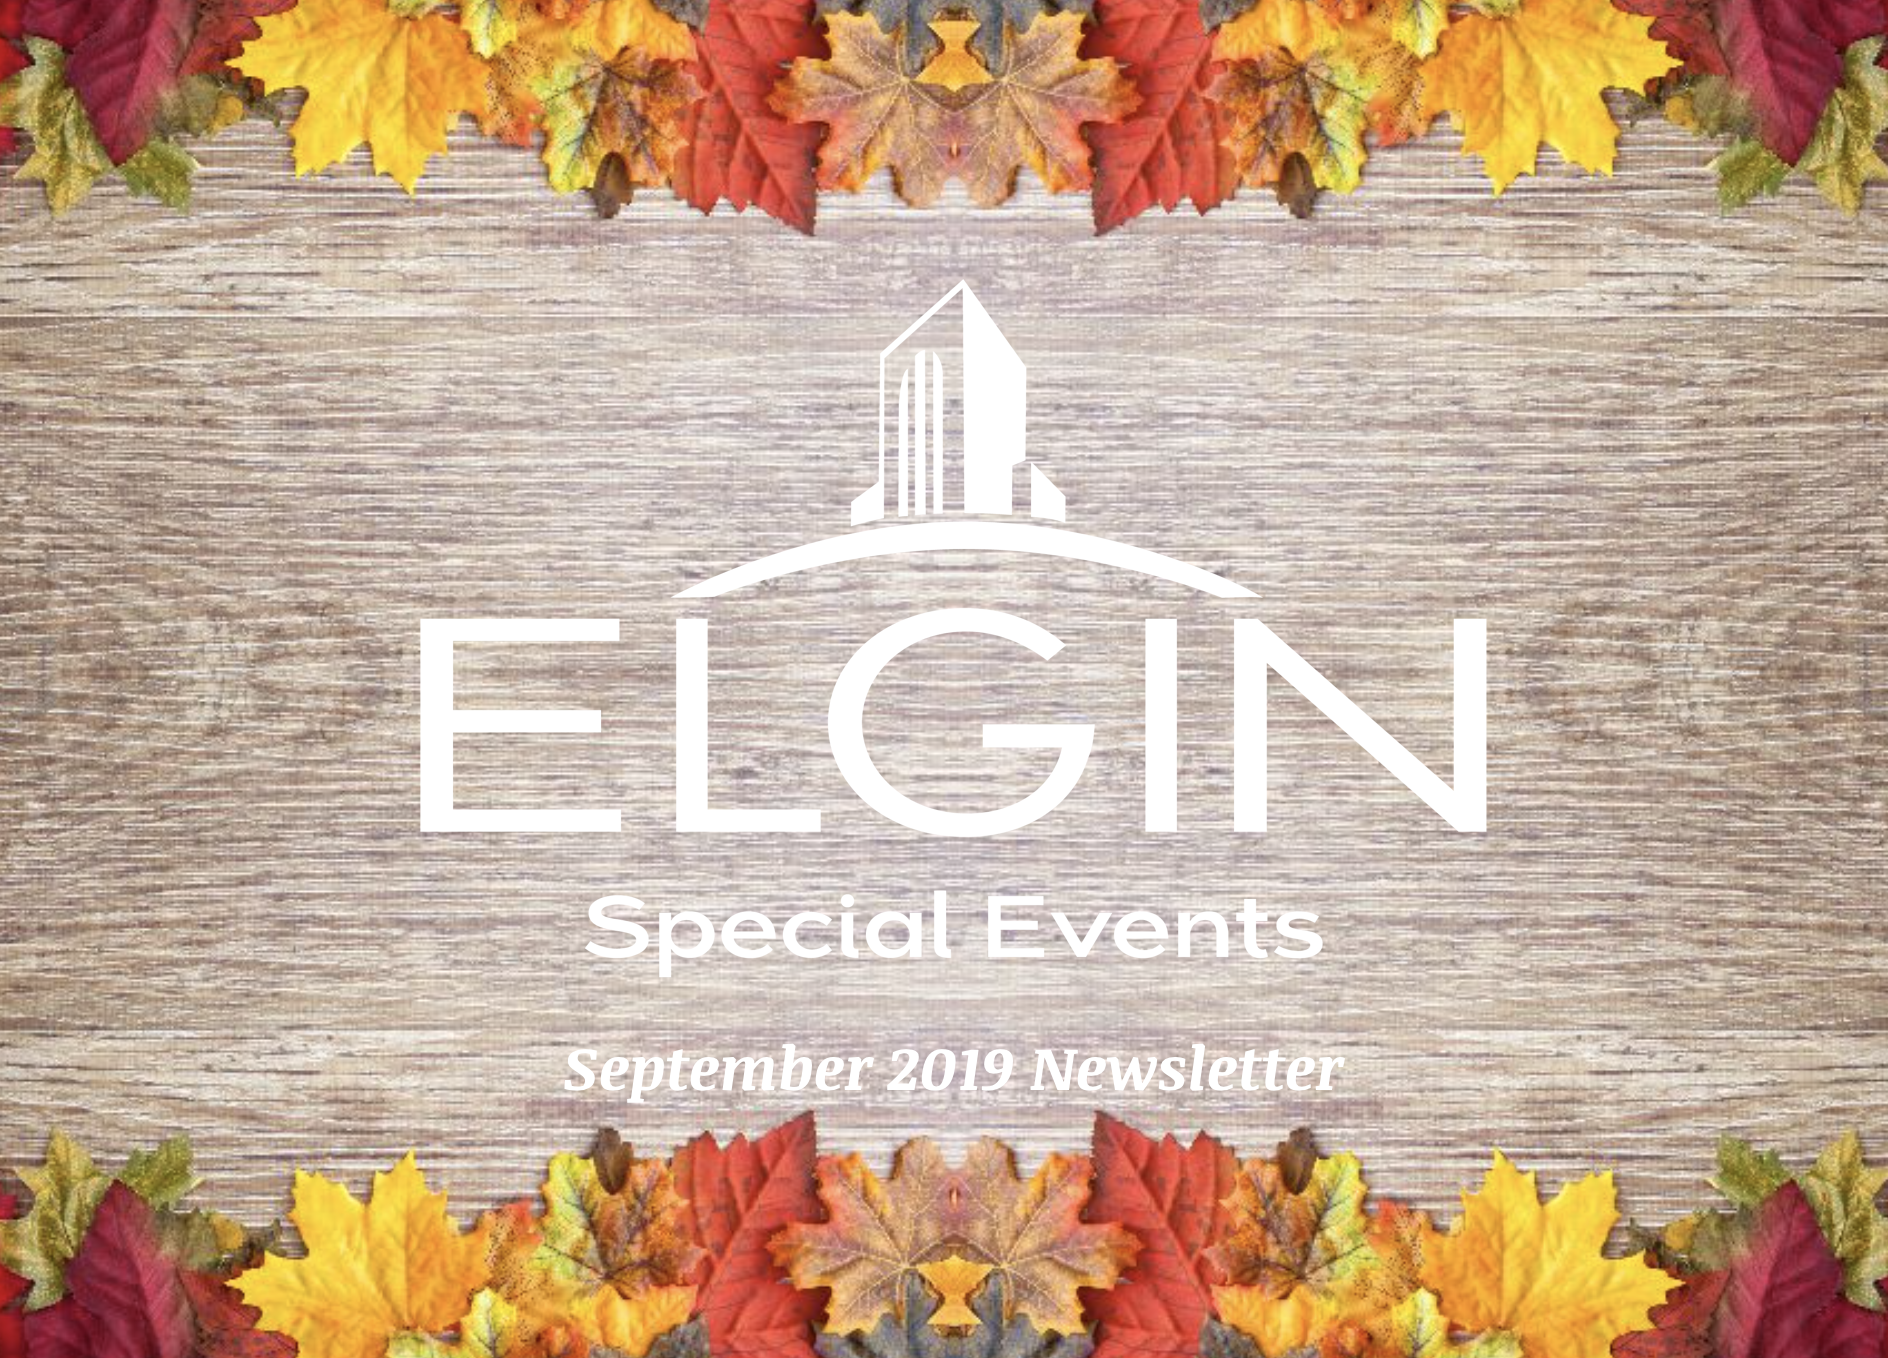 Special Events Newsletter header image for September 2019